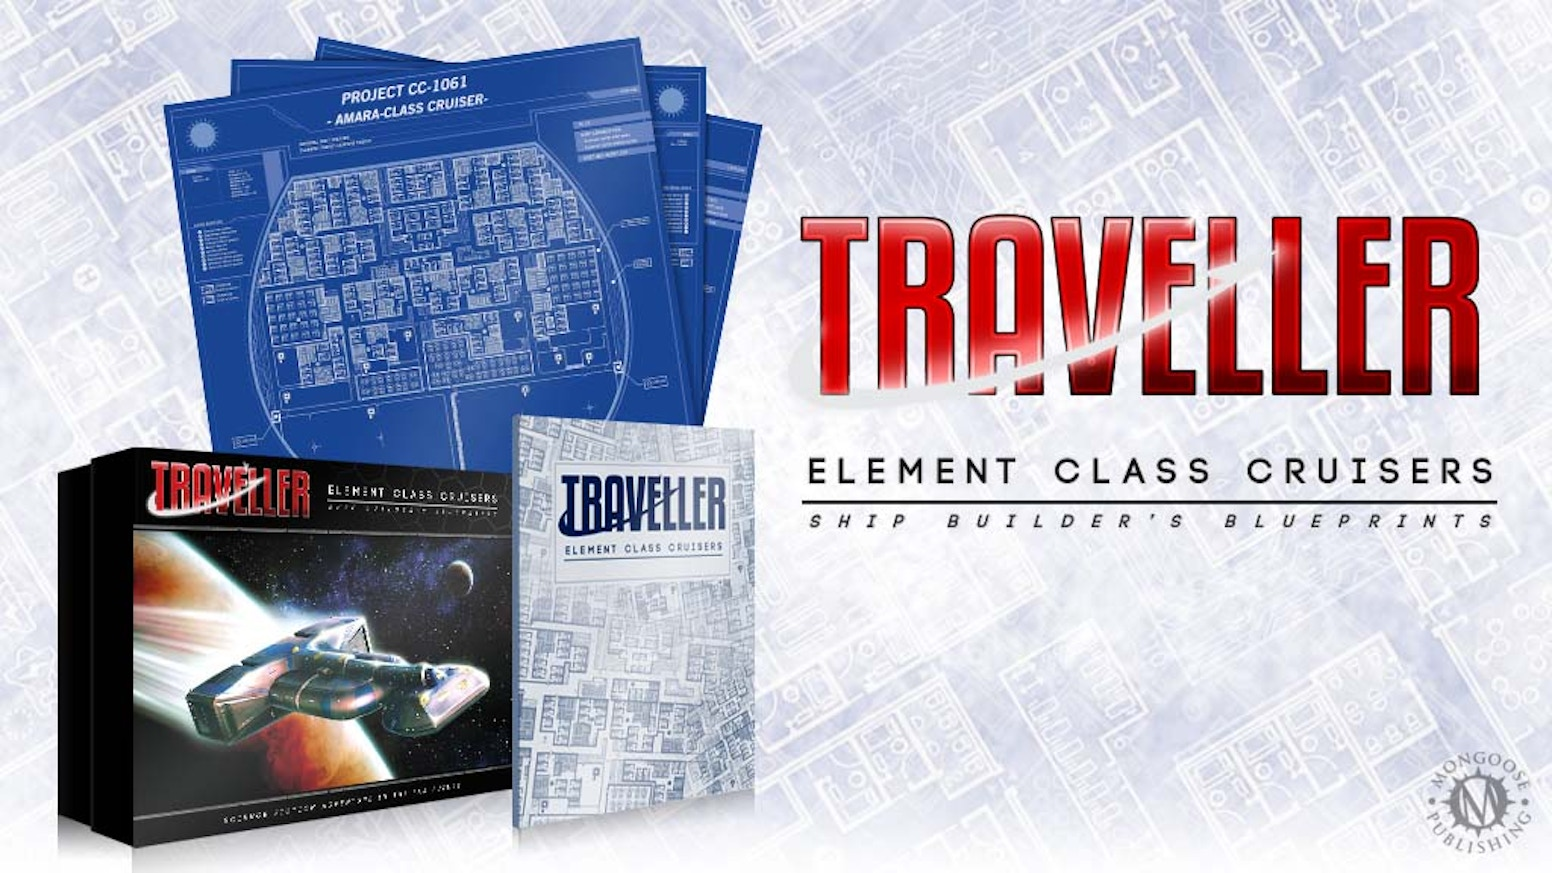 Traveller rpg element class cruisers box set by matthew sprange a box set for the latest edition of the traveller rpg exploring a huge cruiser complete with giant sized blueprints for every deck malvernweather